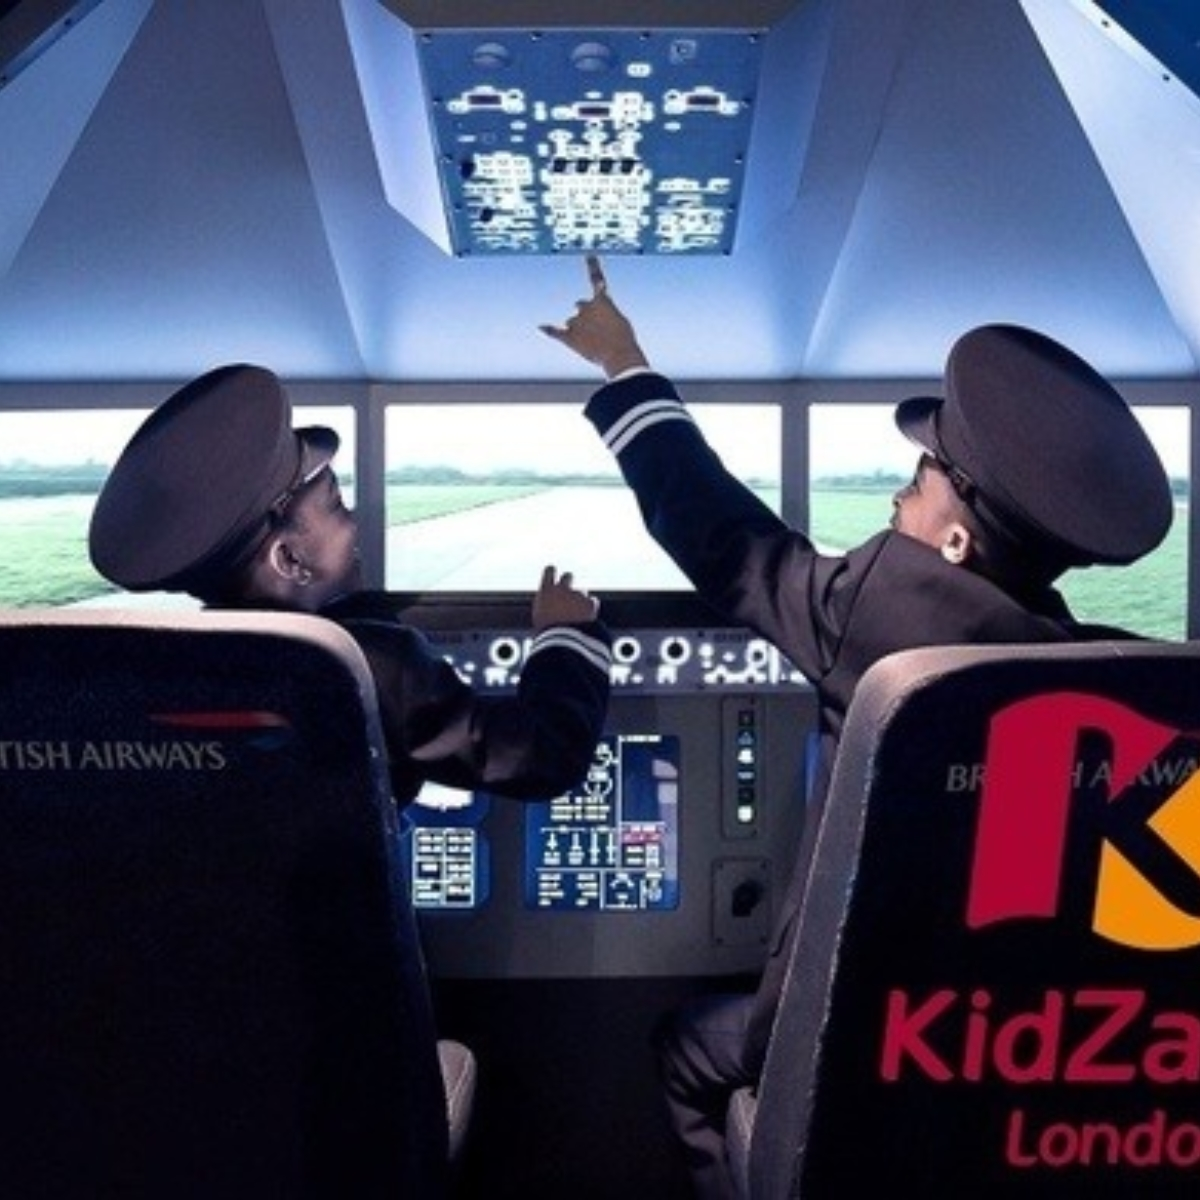 KidZania London Images